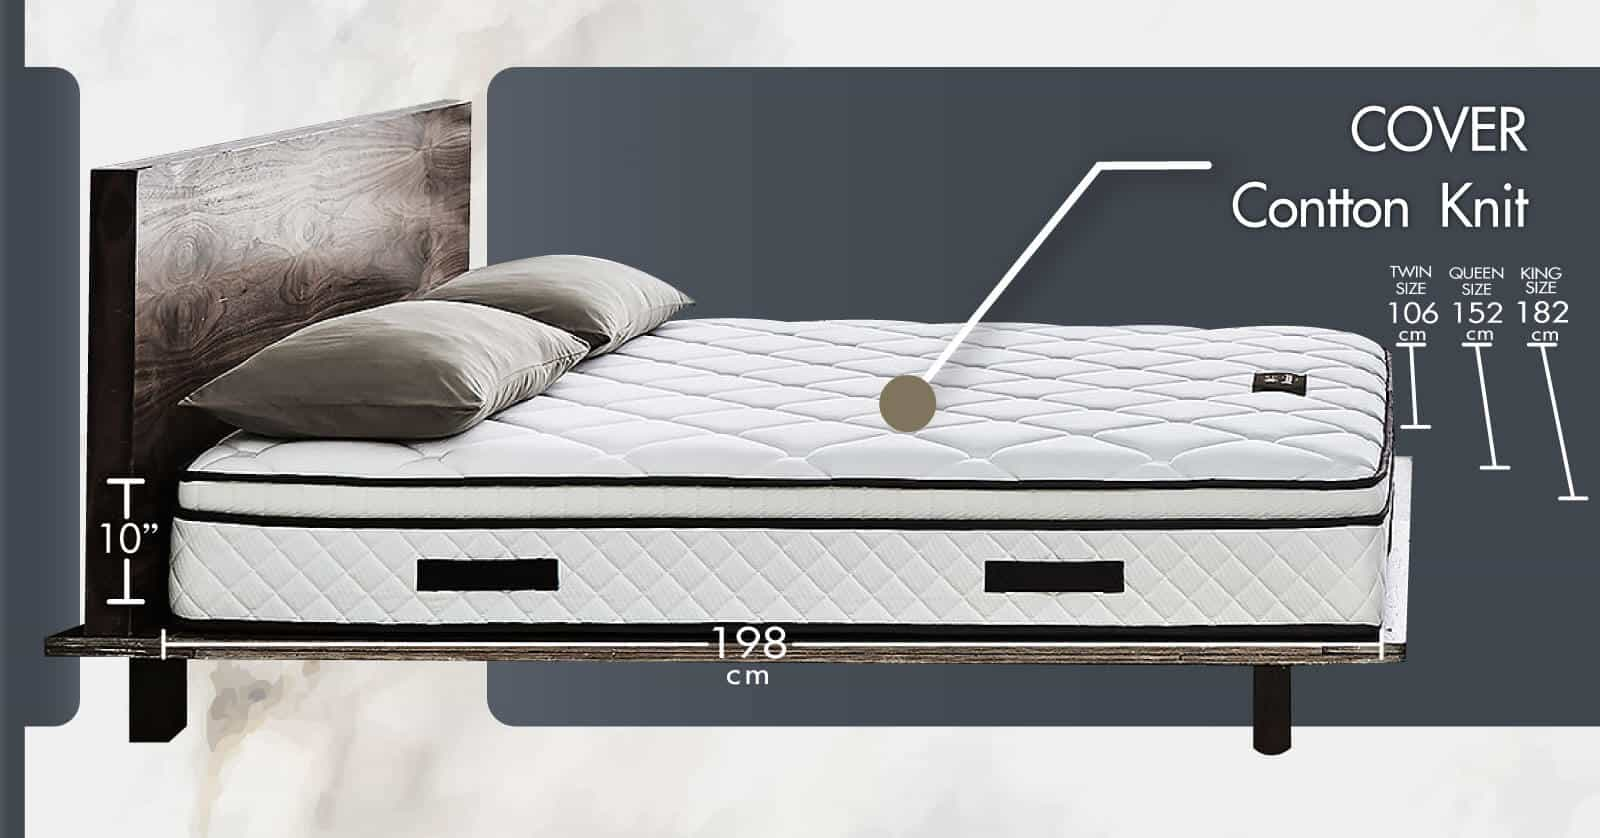 Lotus Foam Spring Mattress Damian – Ideal Firm Mattress – Thickness 10 inches – Warranty 10 years 10